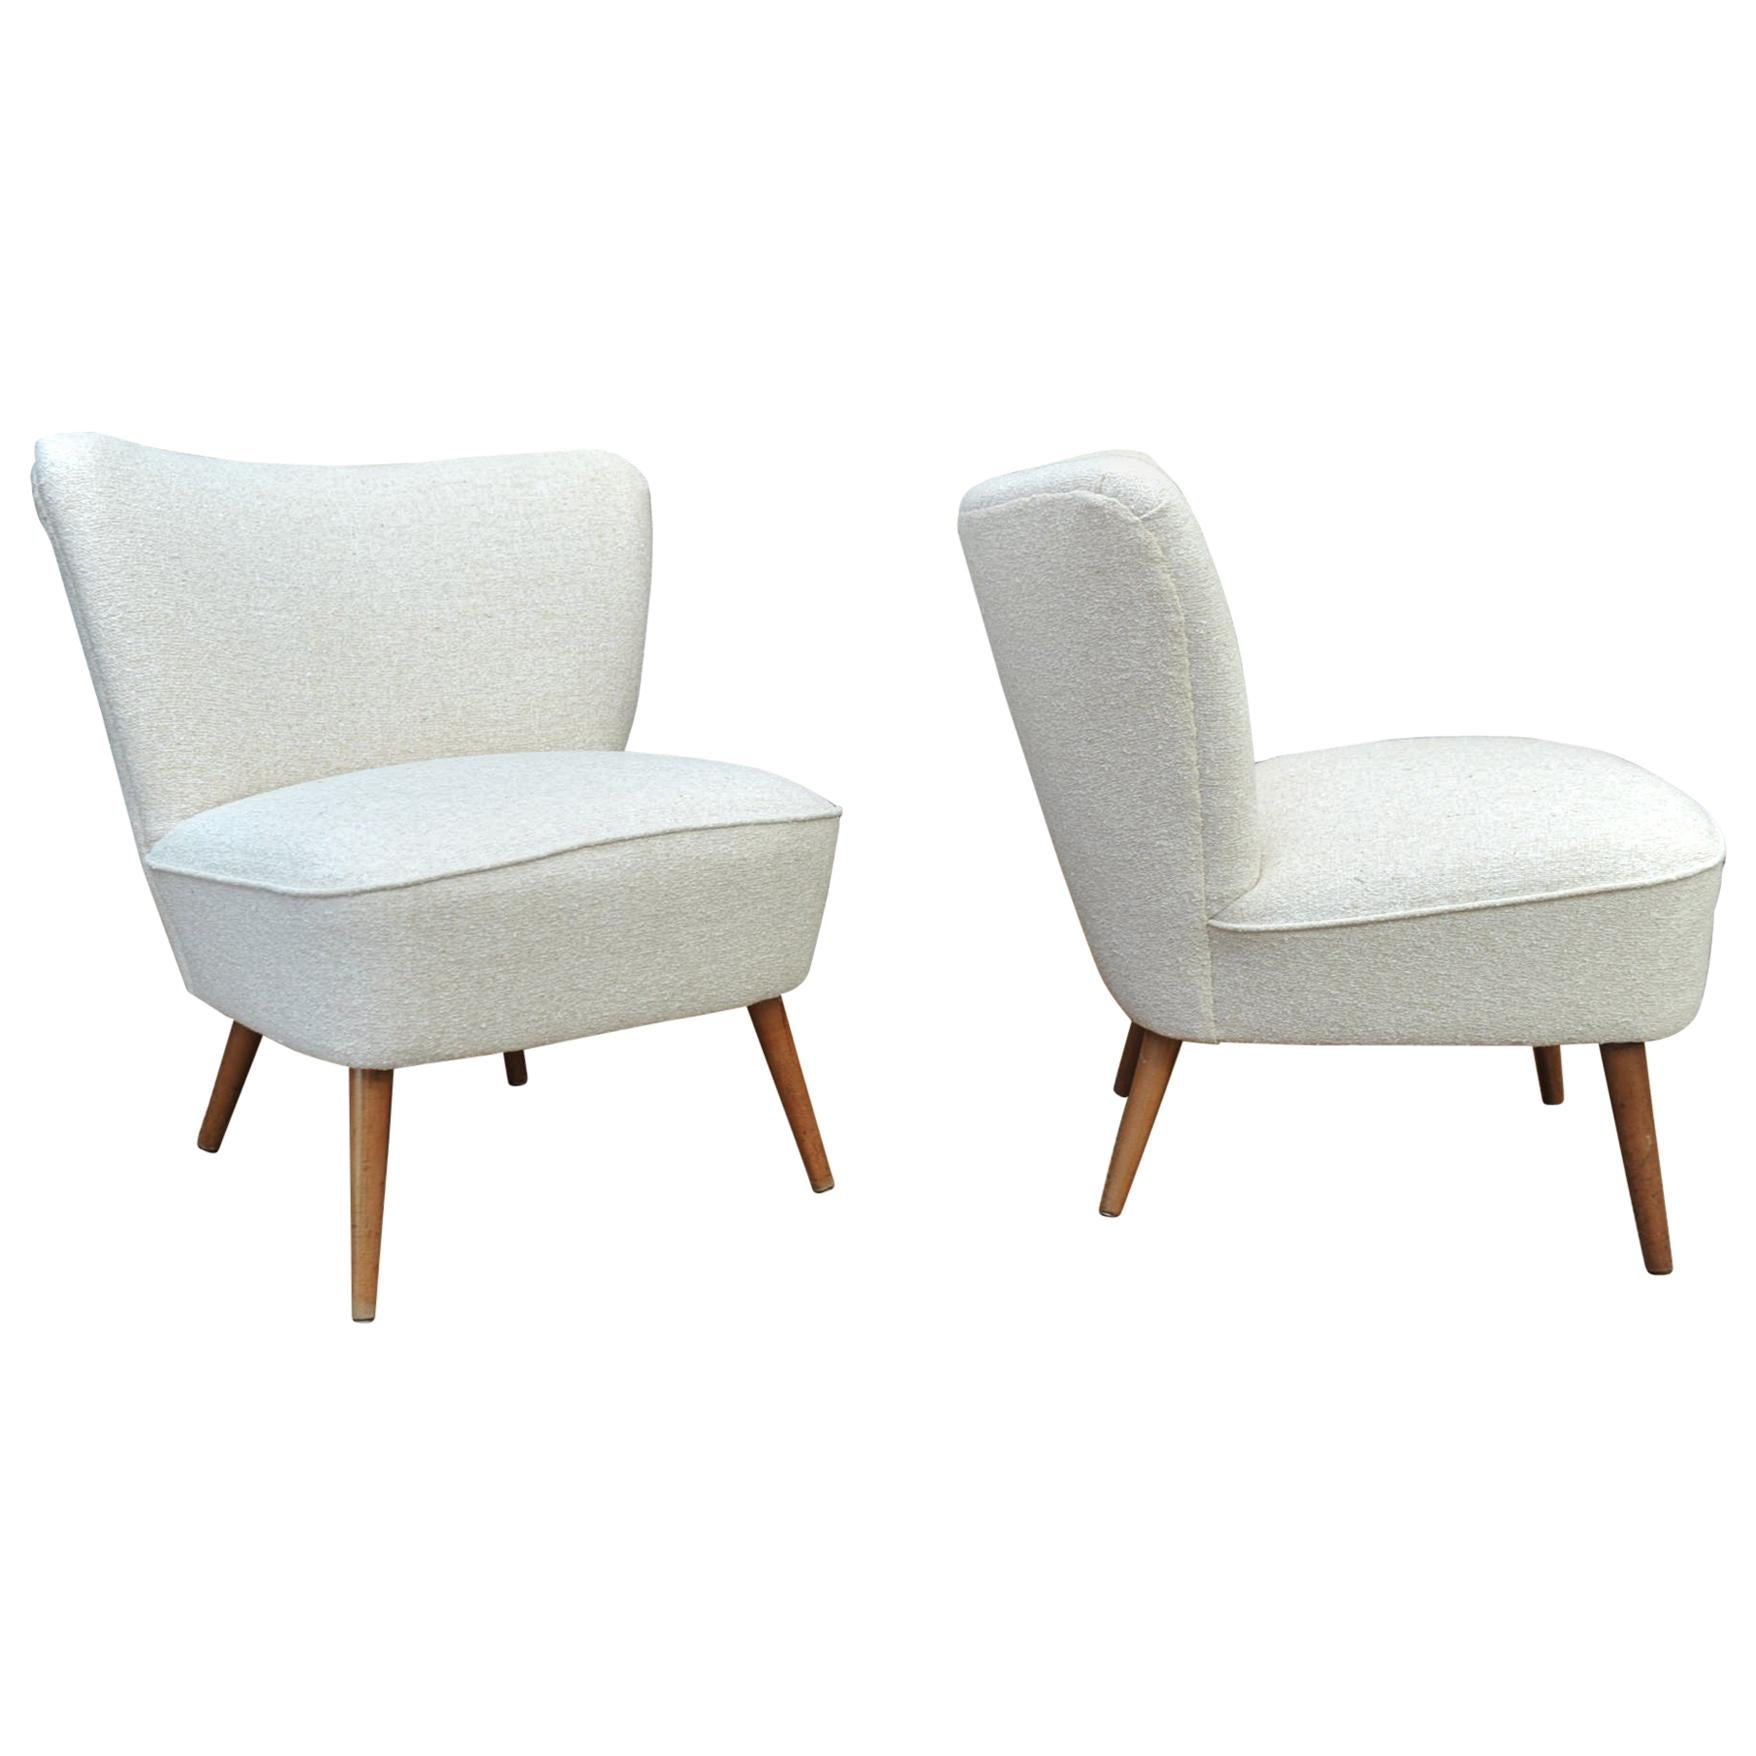 Beau Pair Of French 1950s Cocktail Chairs